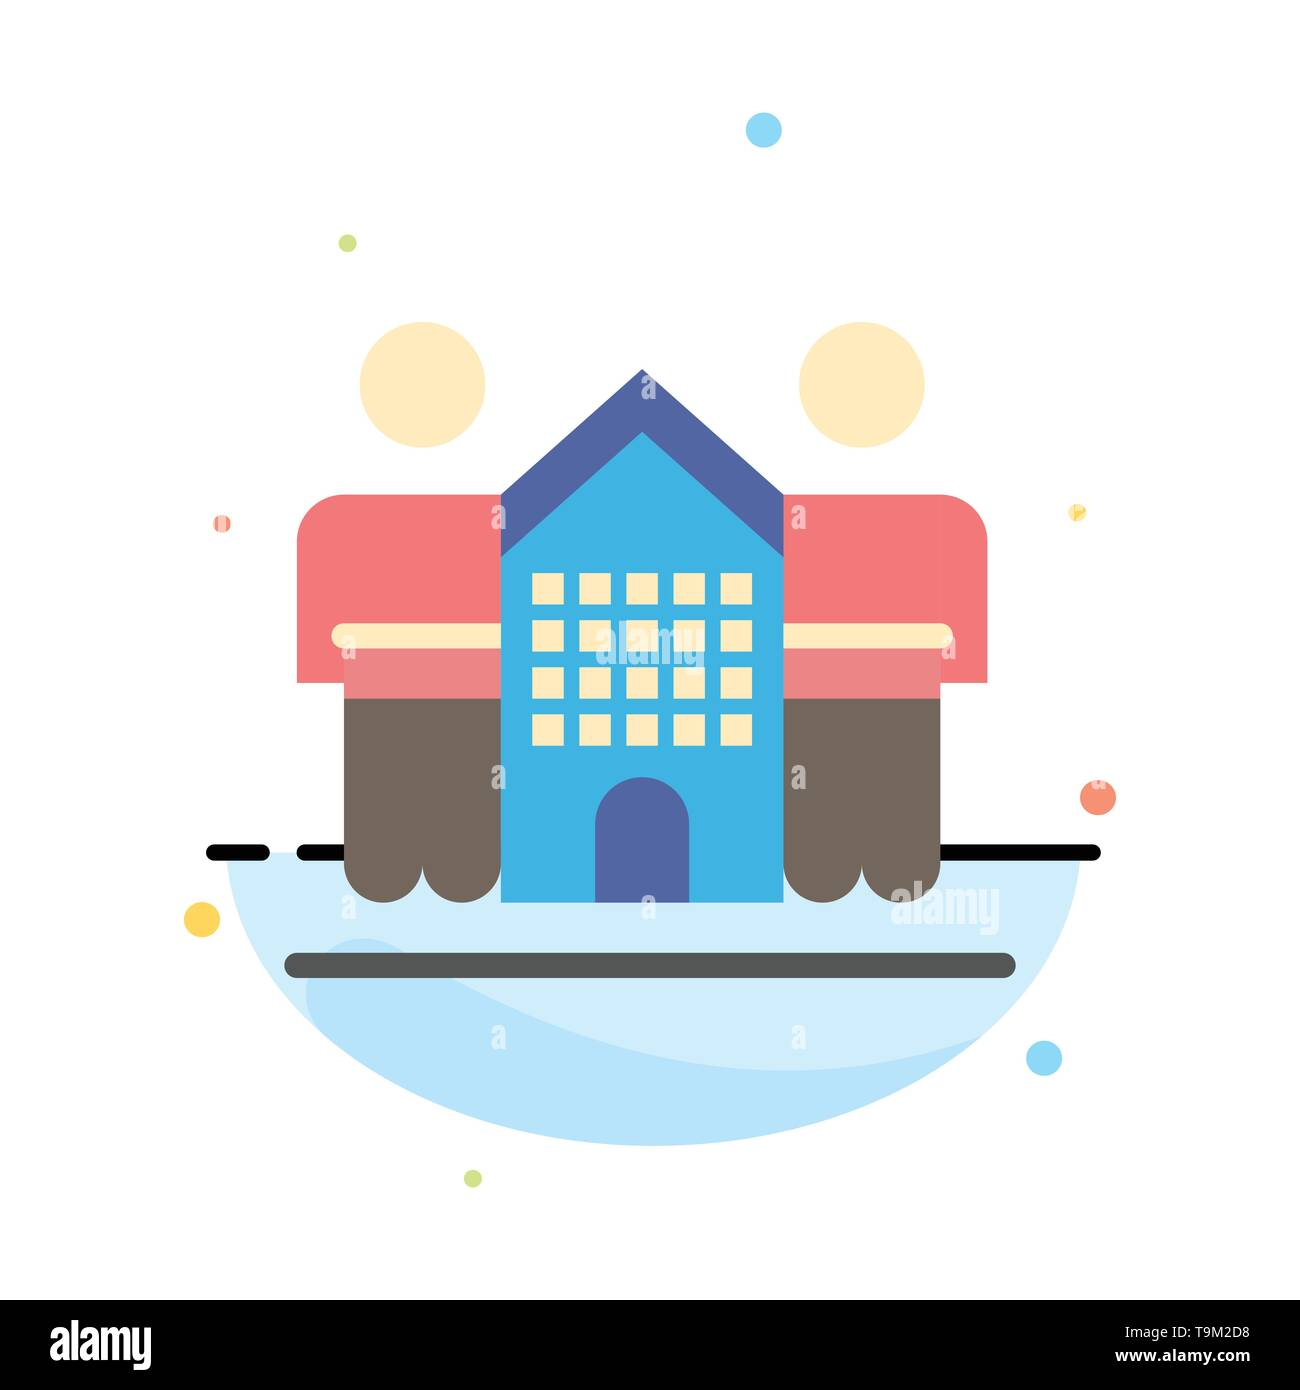 Culture, Friendly, Friends, Home, Life Abstract Flat Color Icon Template - Stock Image